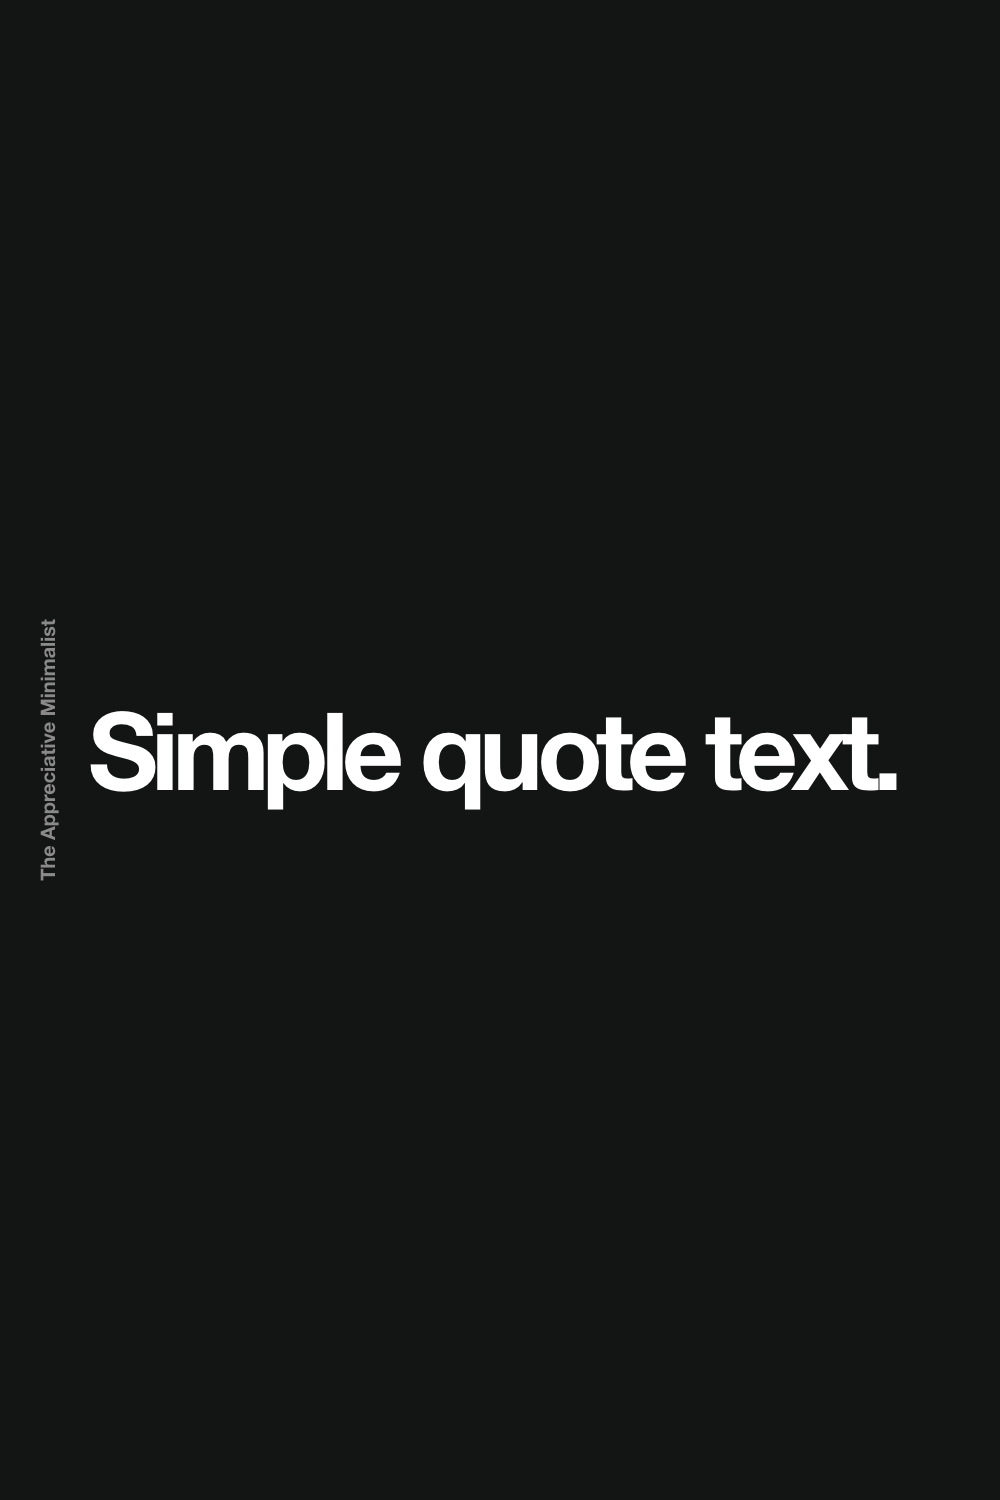 Simple quote text.